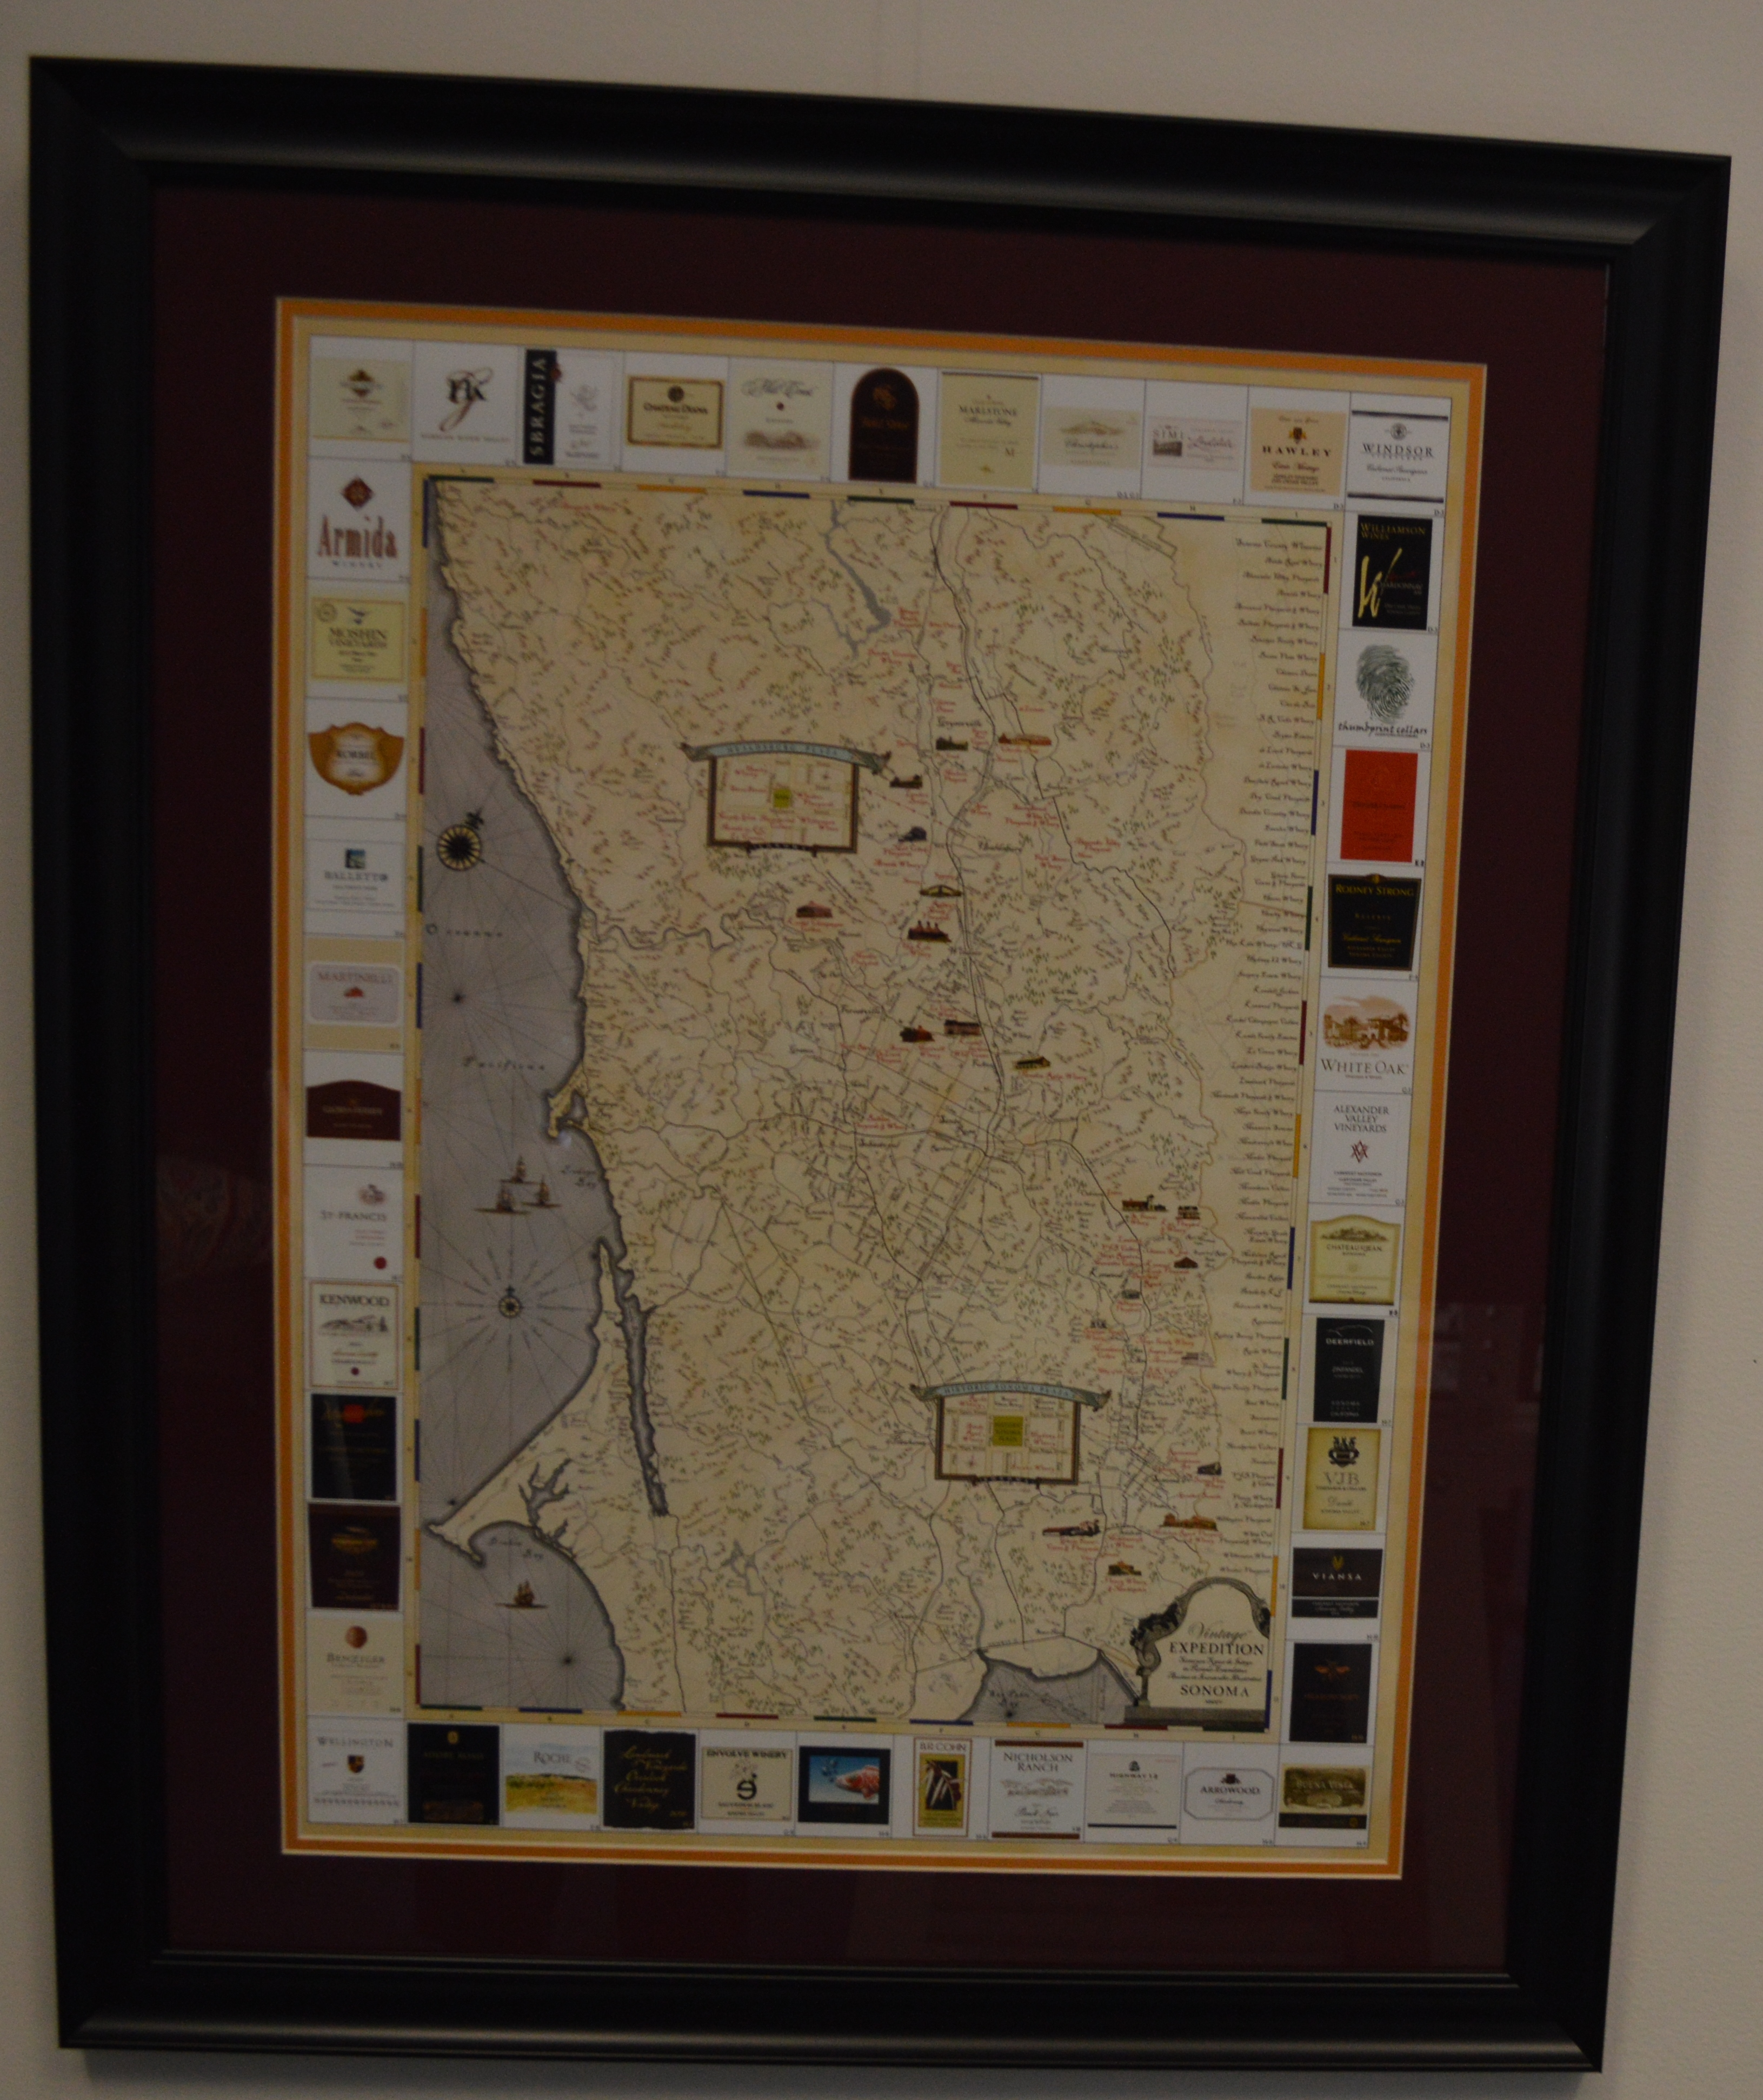 18 5x25 Sonoma Winery Map Poster Print Custom Framed And